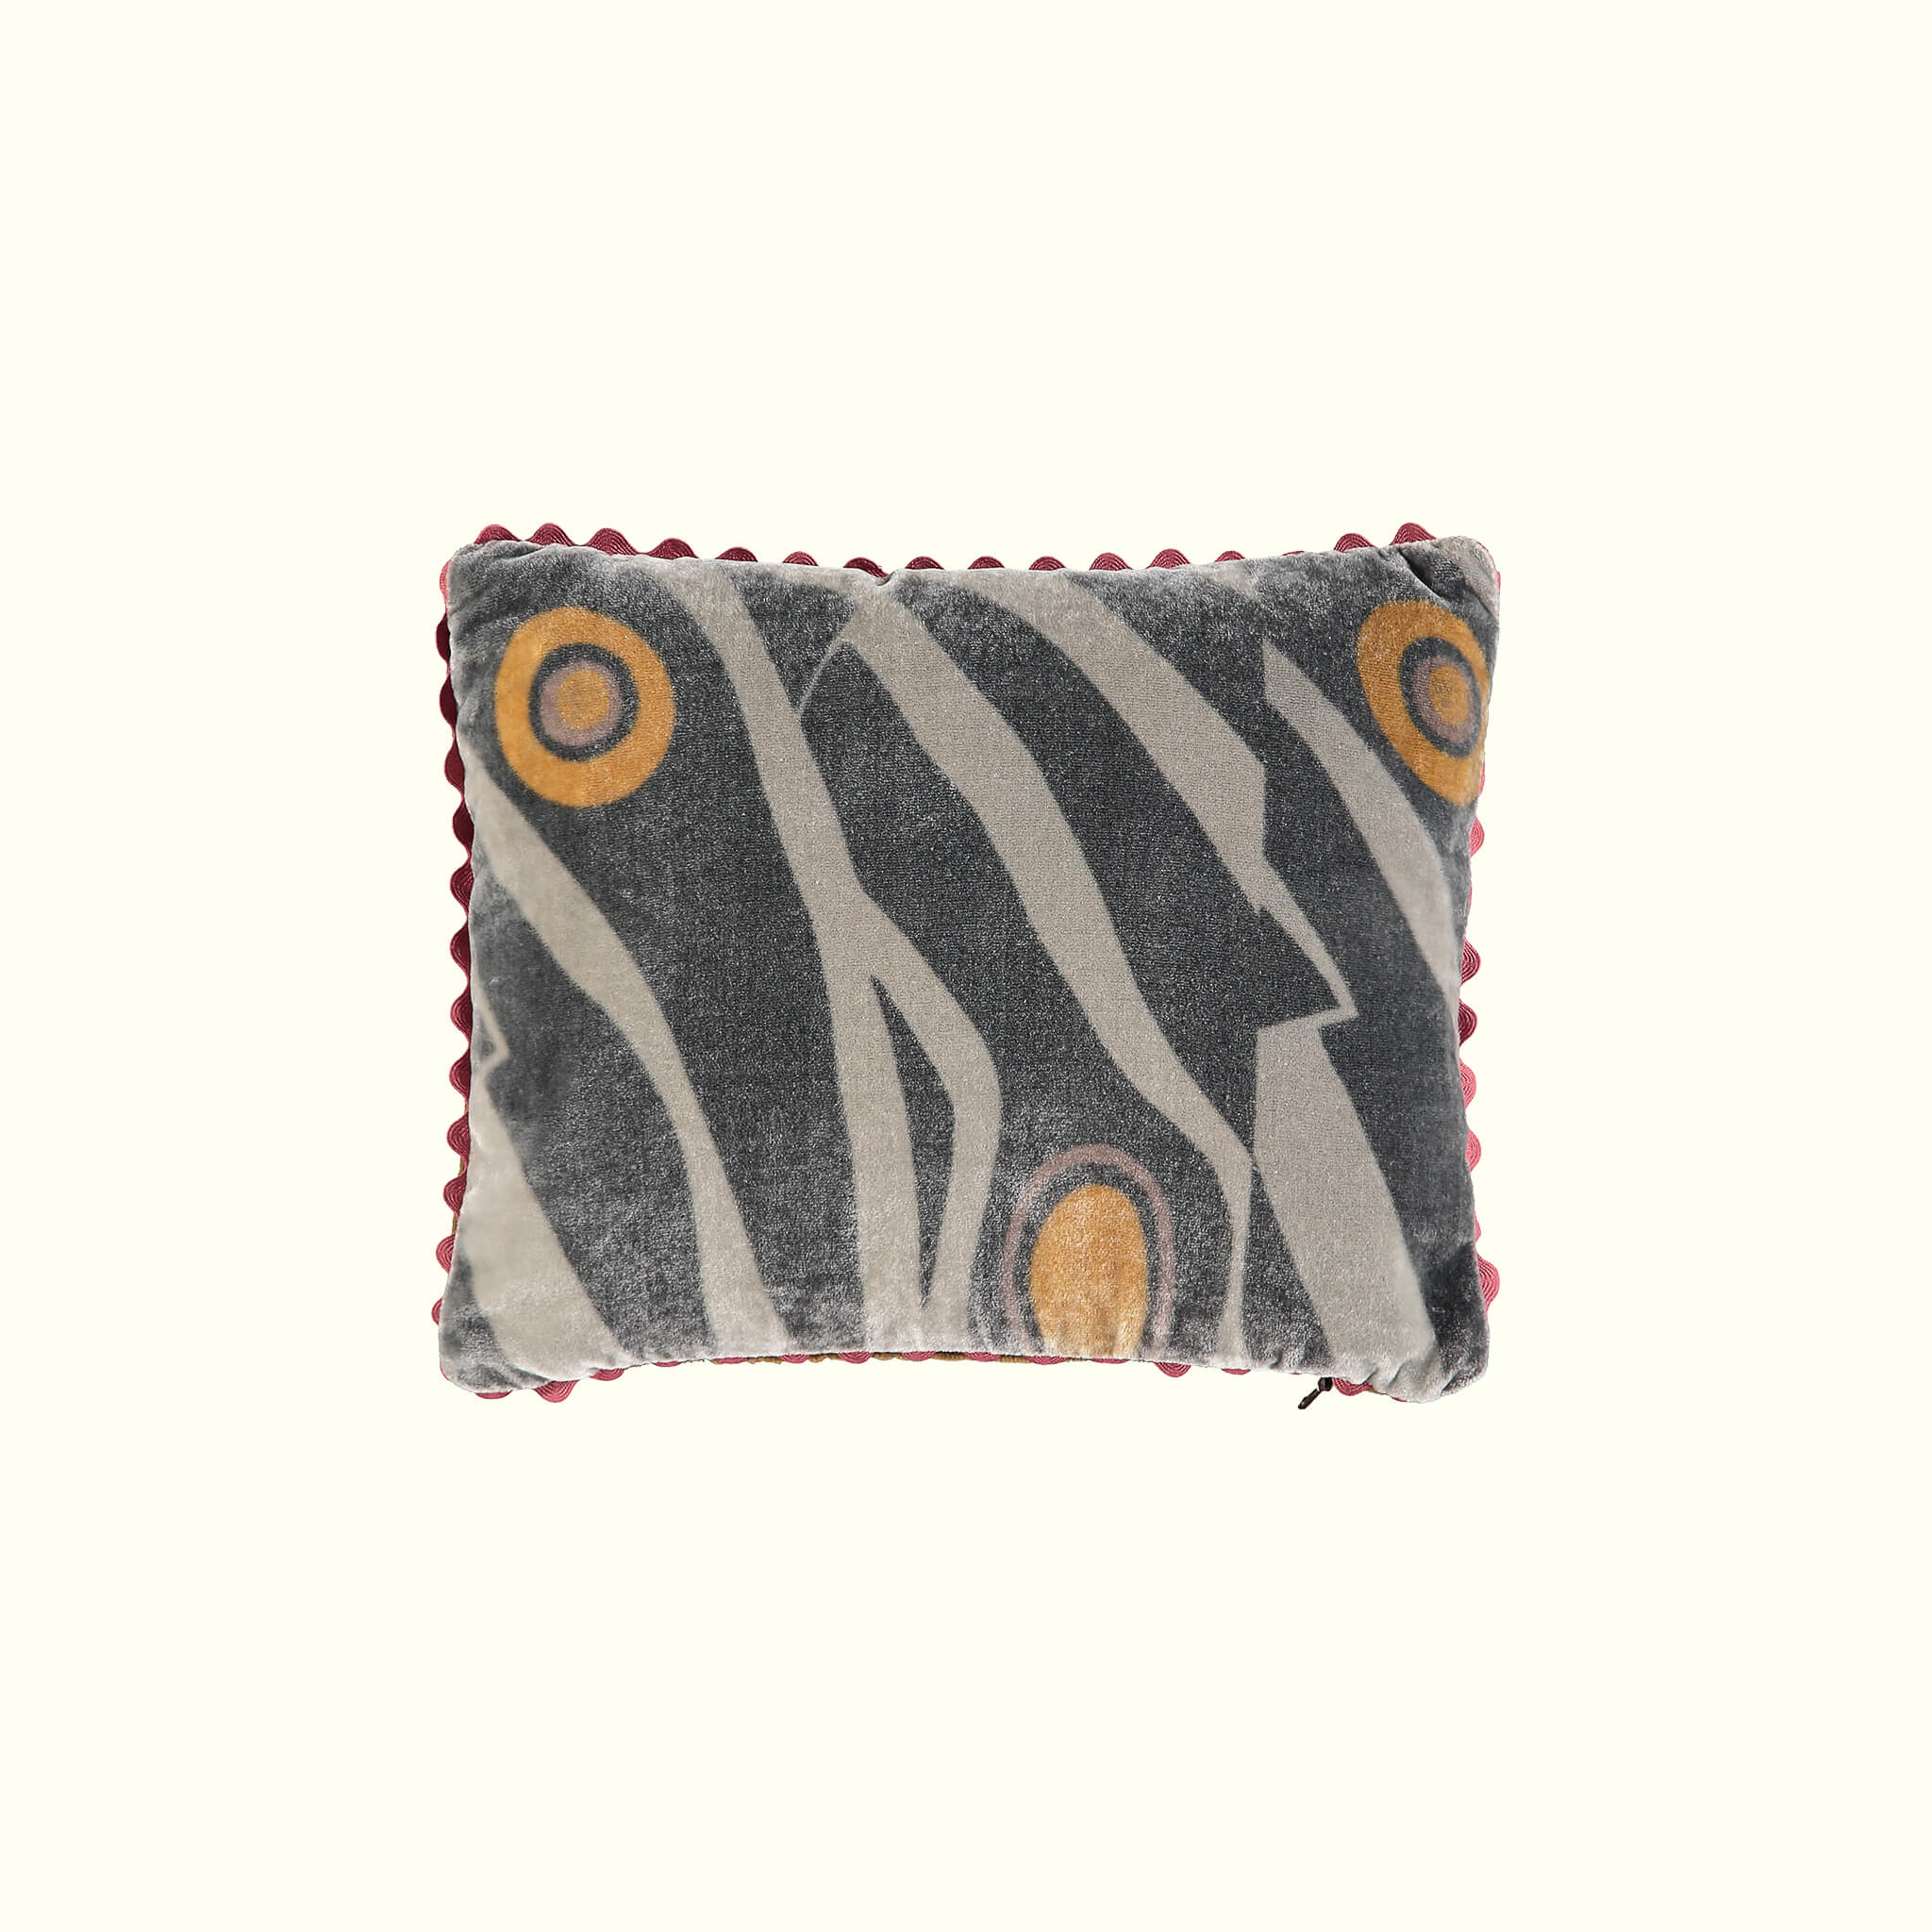 A luxury British silk velvet travel pillow by GVE in black Dune print design.